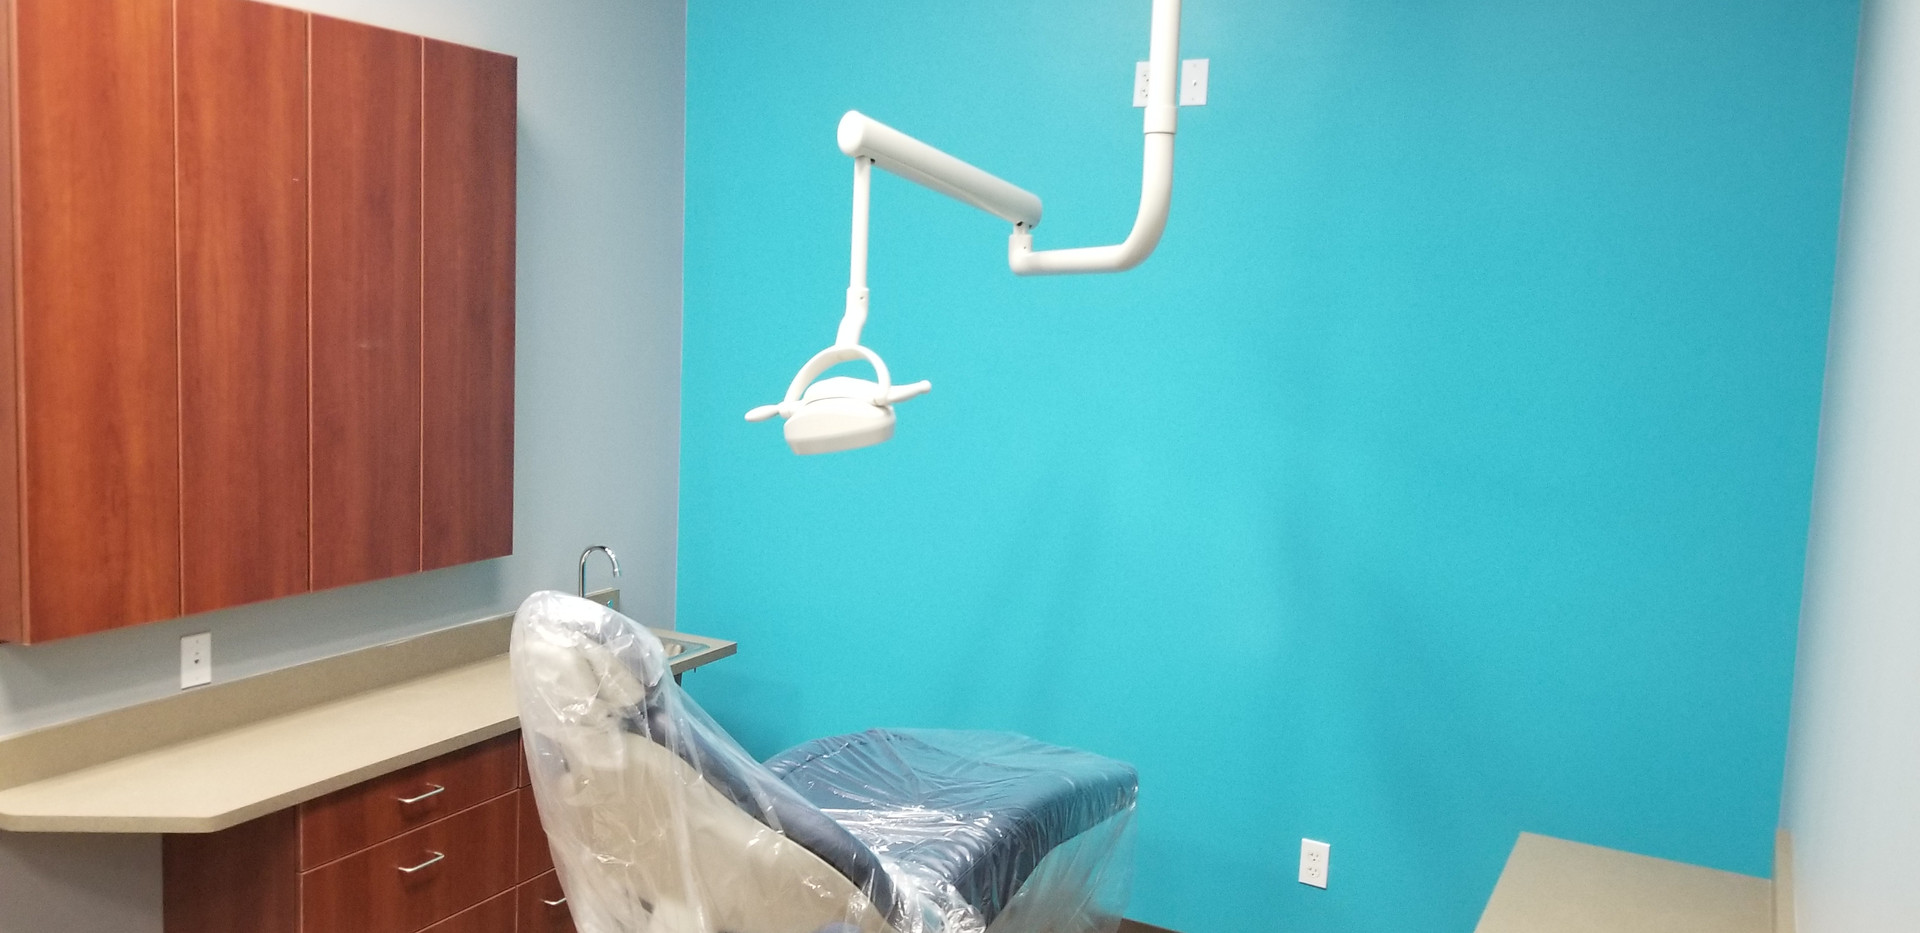 Higher Up View of Dental Room - Buildout Pros